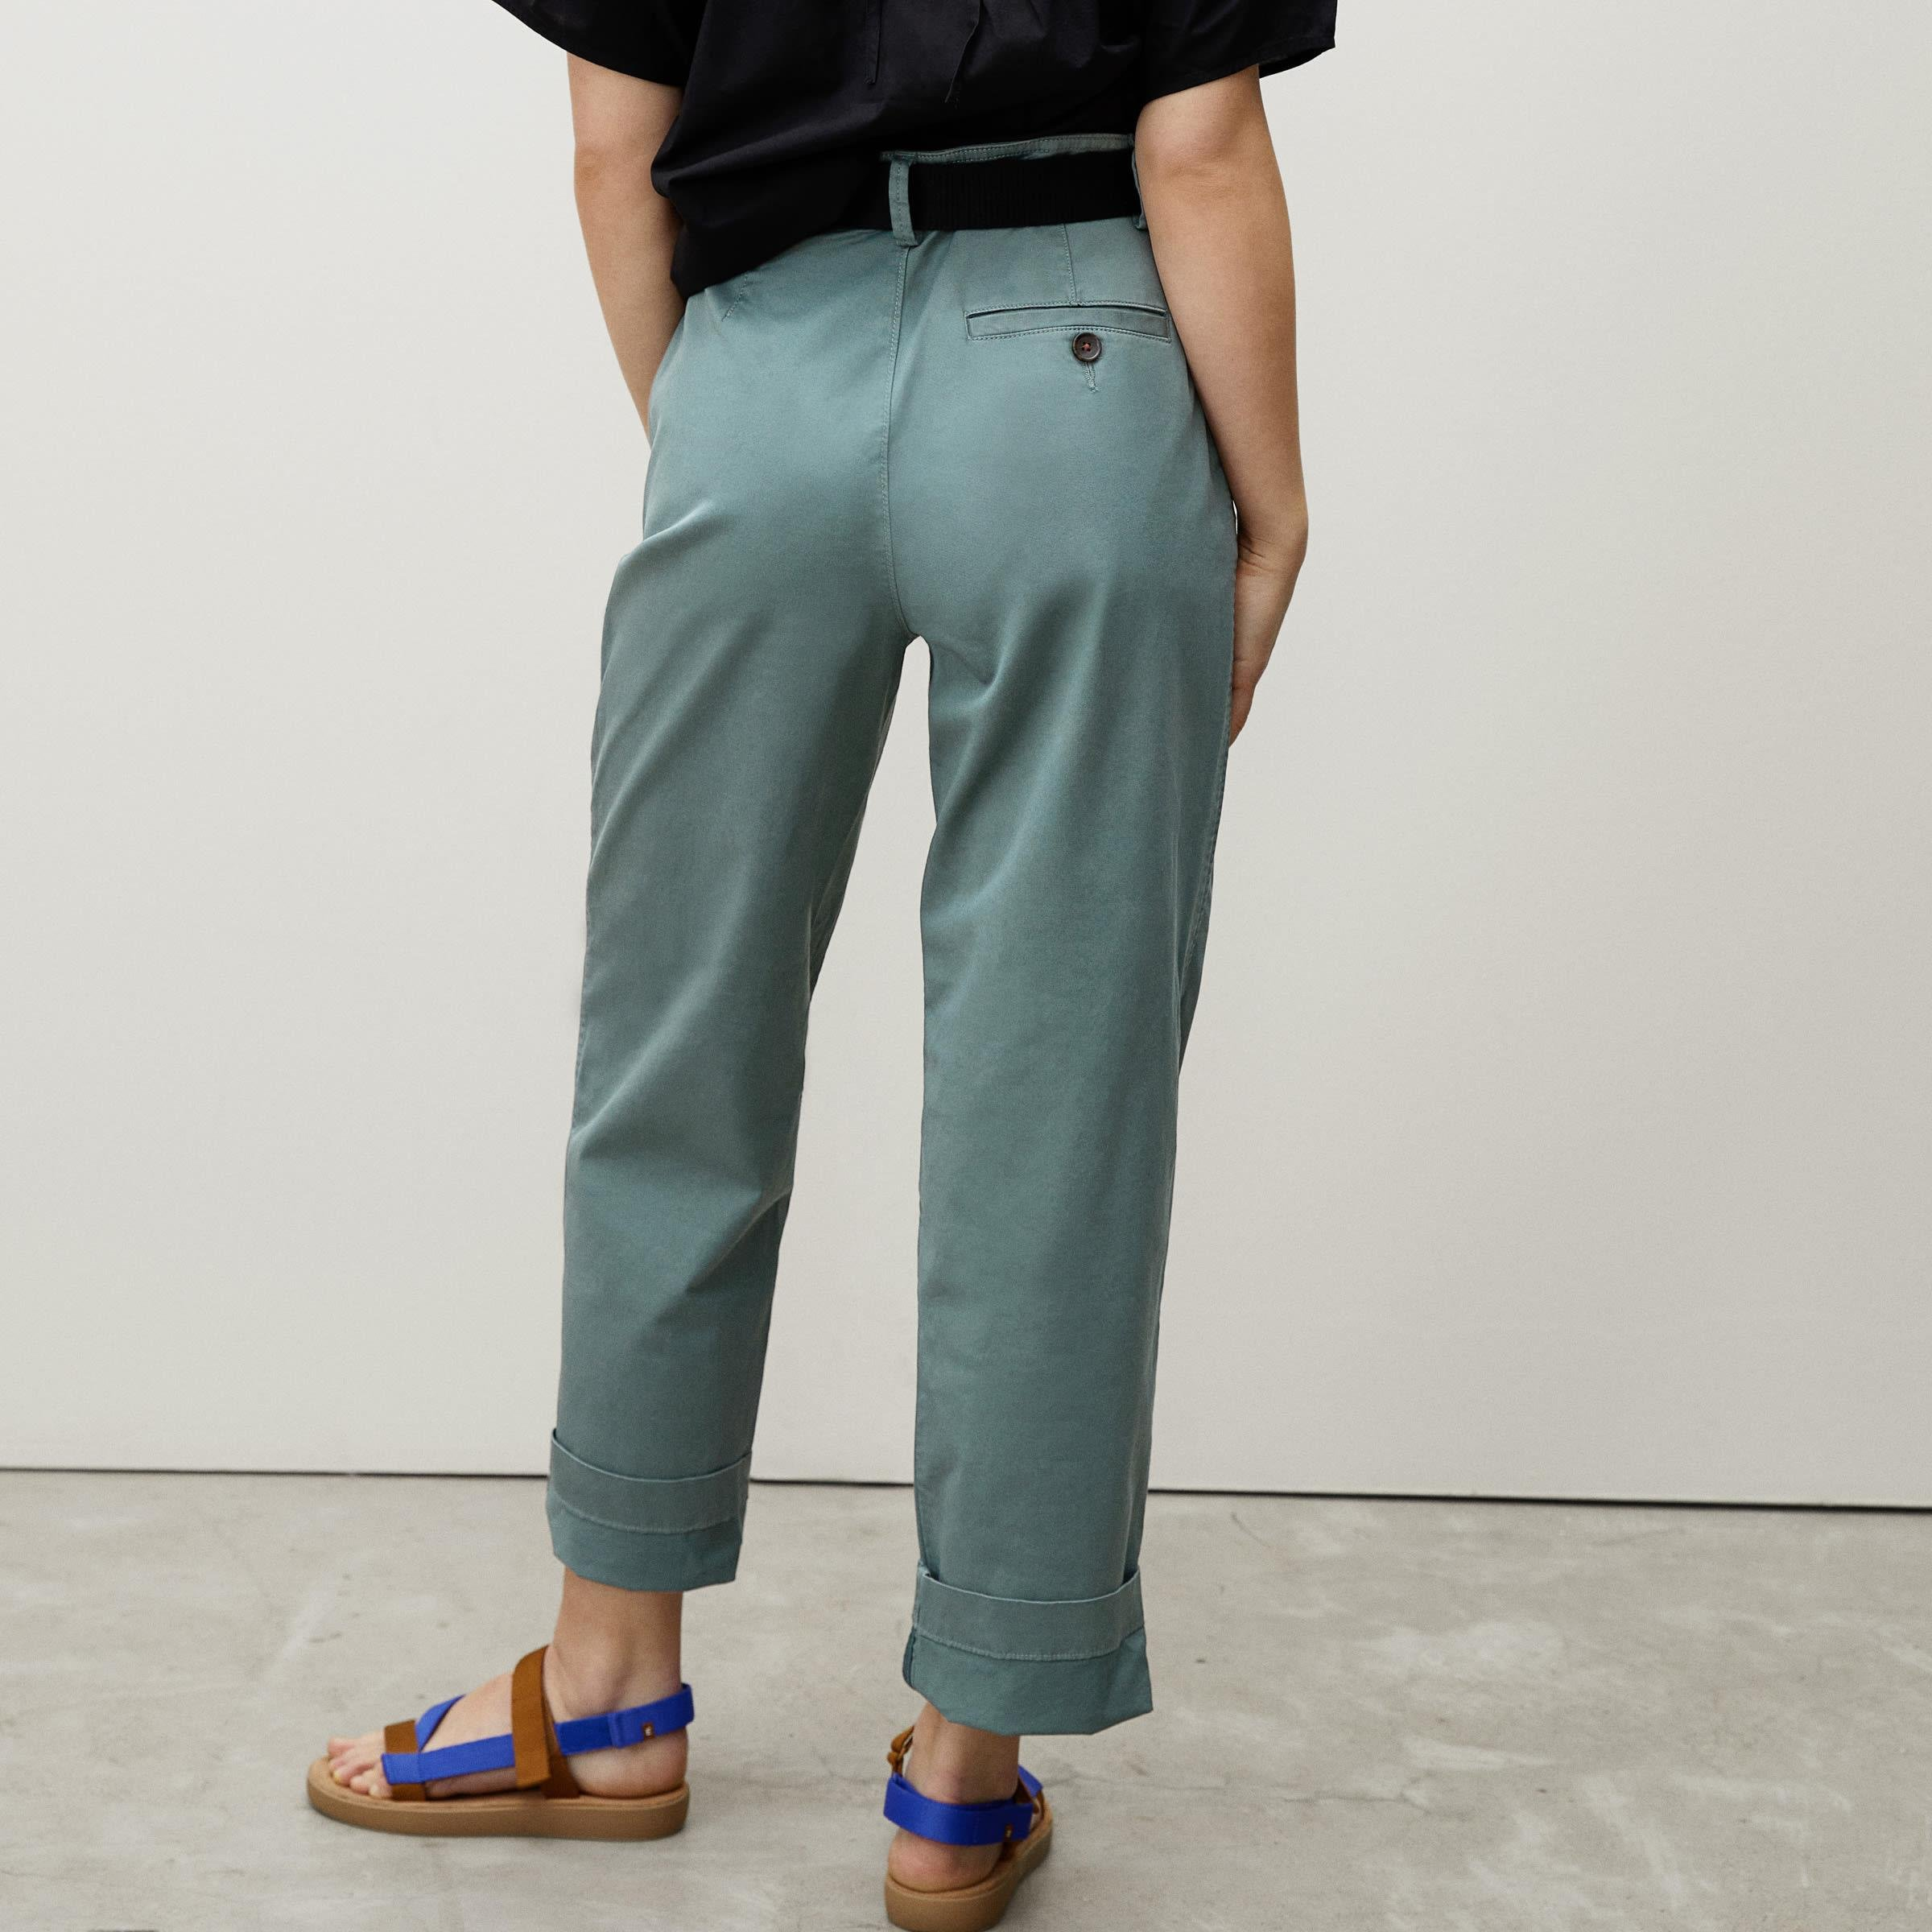 The Pleated Chino 2